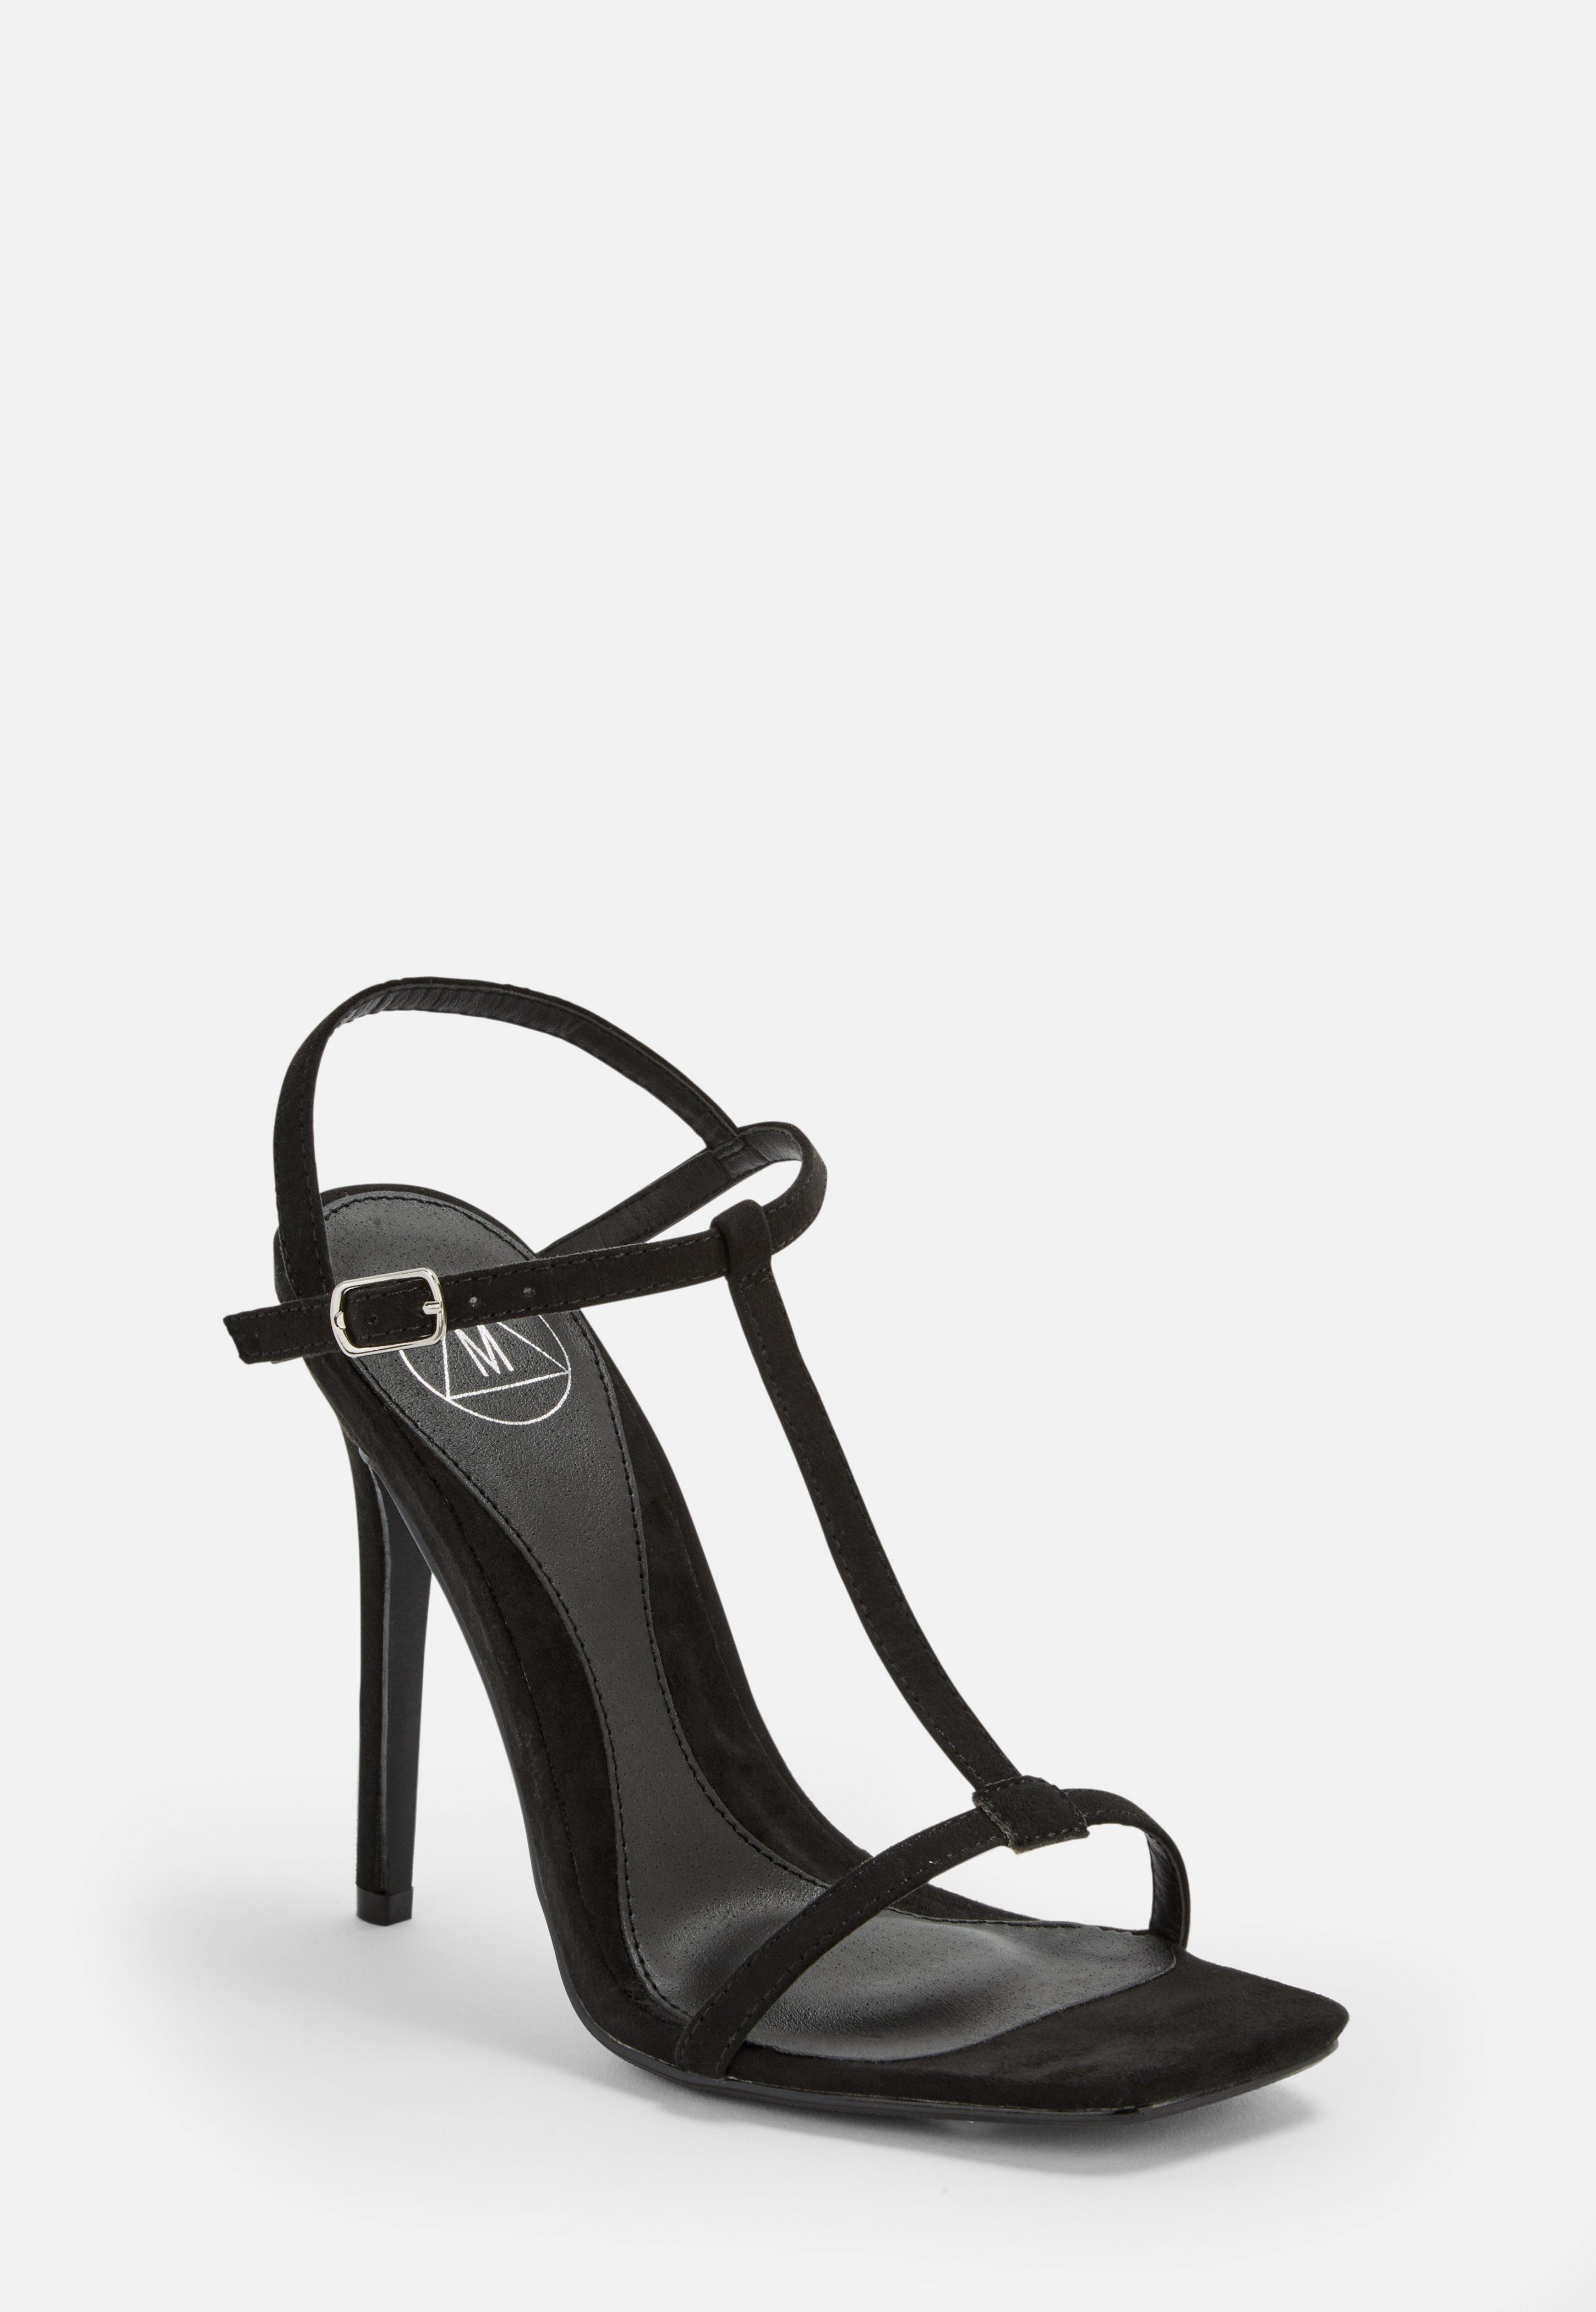 942426df5c2d Barely There Heels - High Heels - Shoes